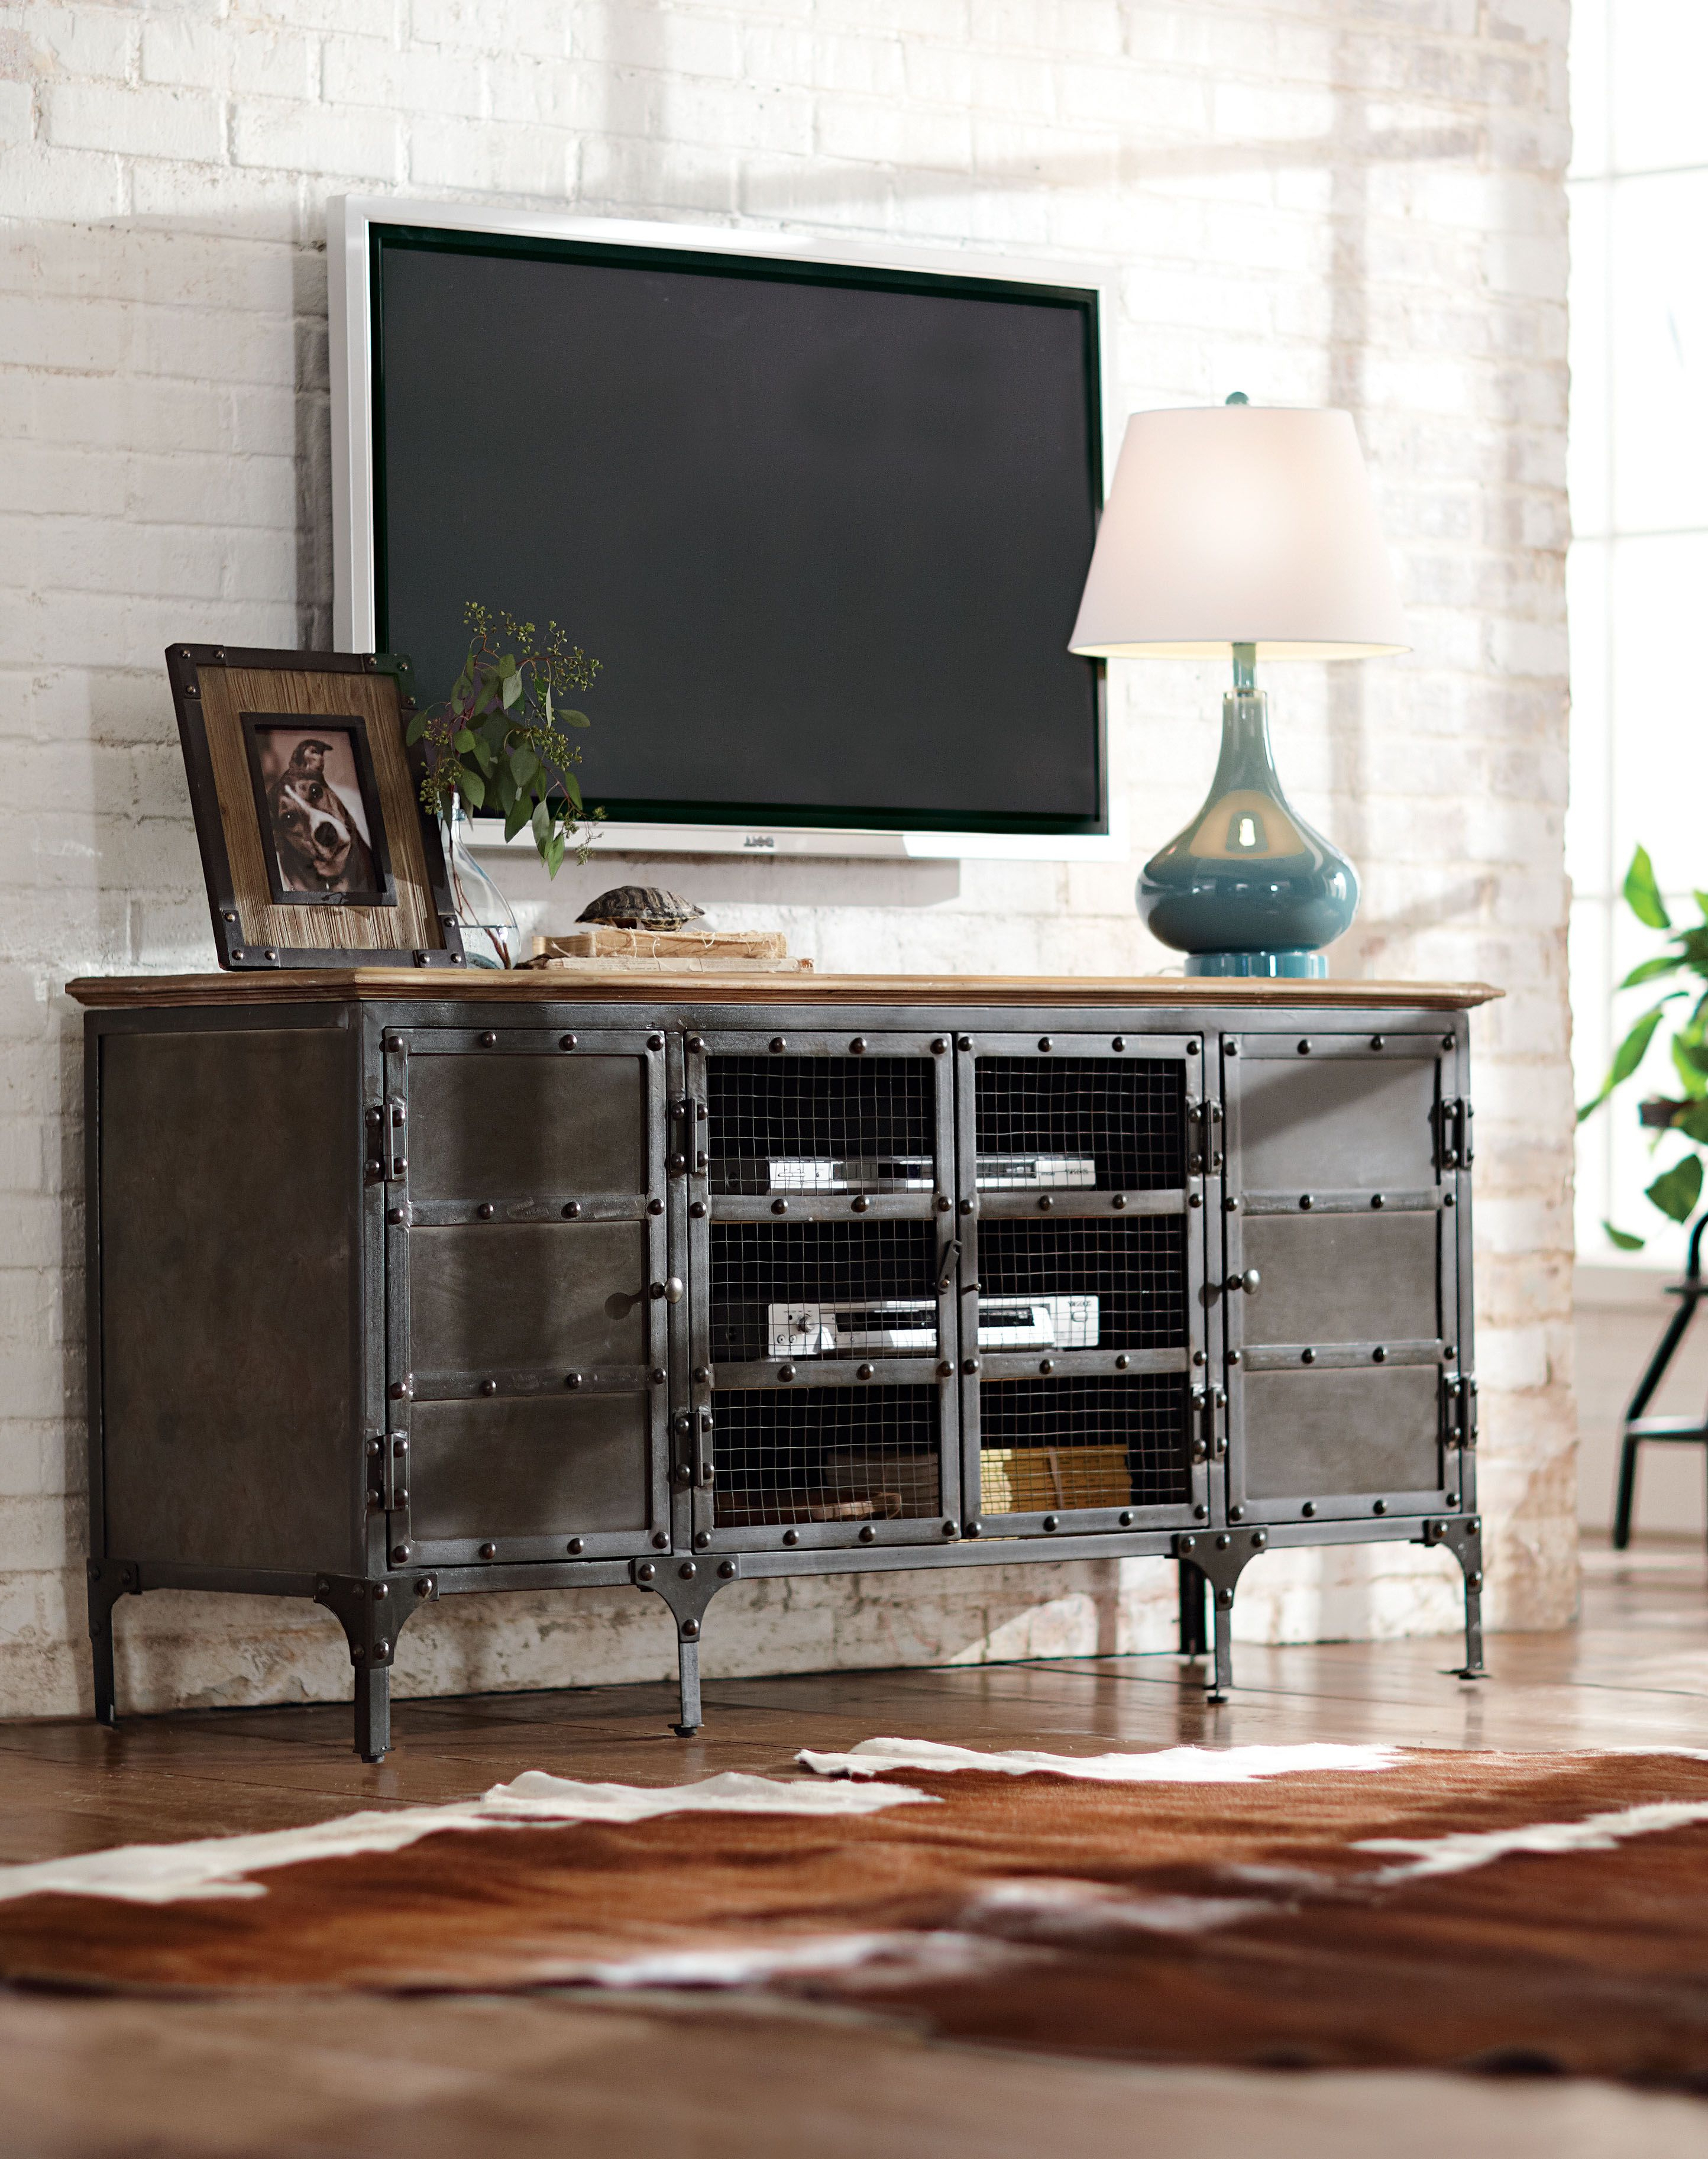 Recent Tv Stand Made Stylish. It's The Perfect Complement To An Industrial Within Industrial Tv Stands (Gallery 19 of 20)